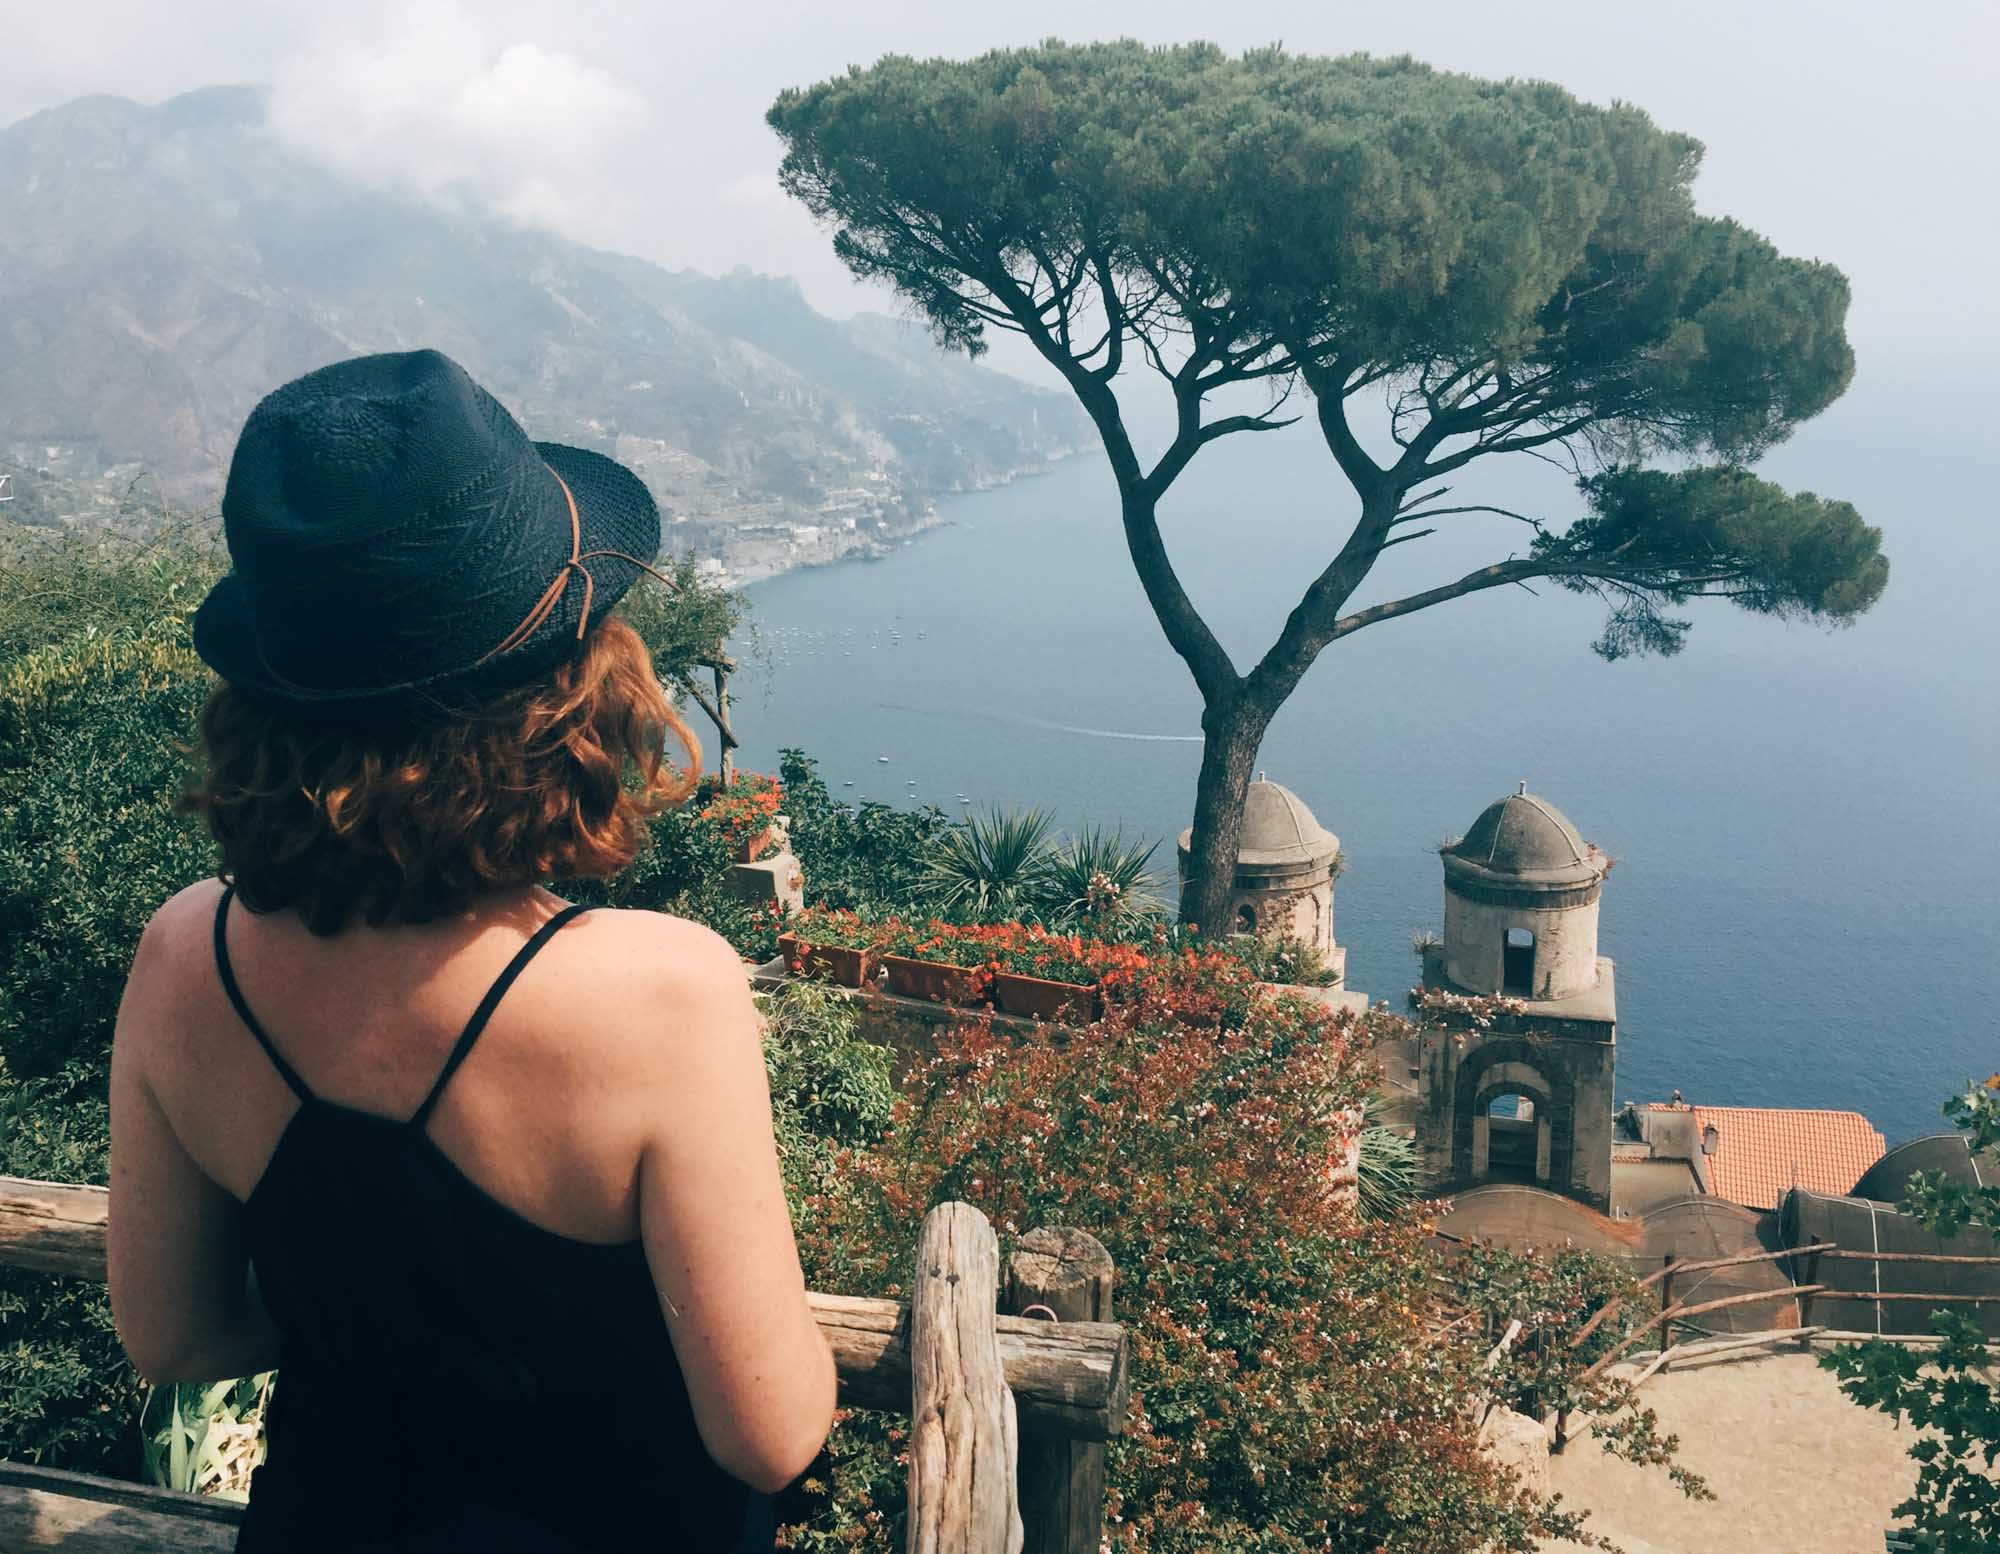 Road trip in Italy itinerary - Ravello